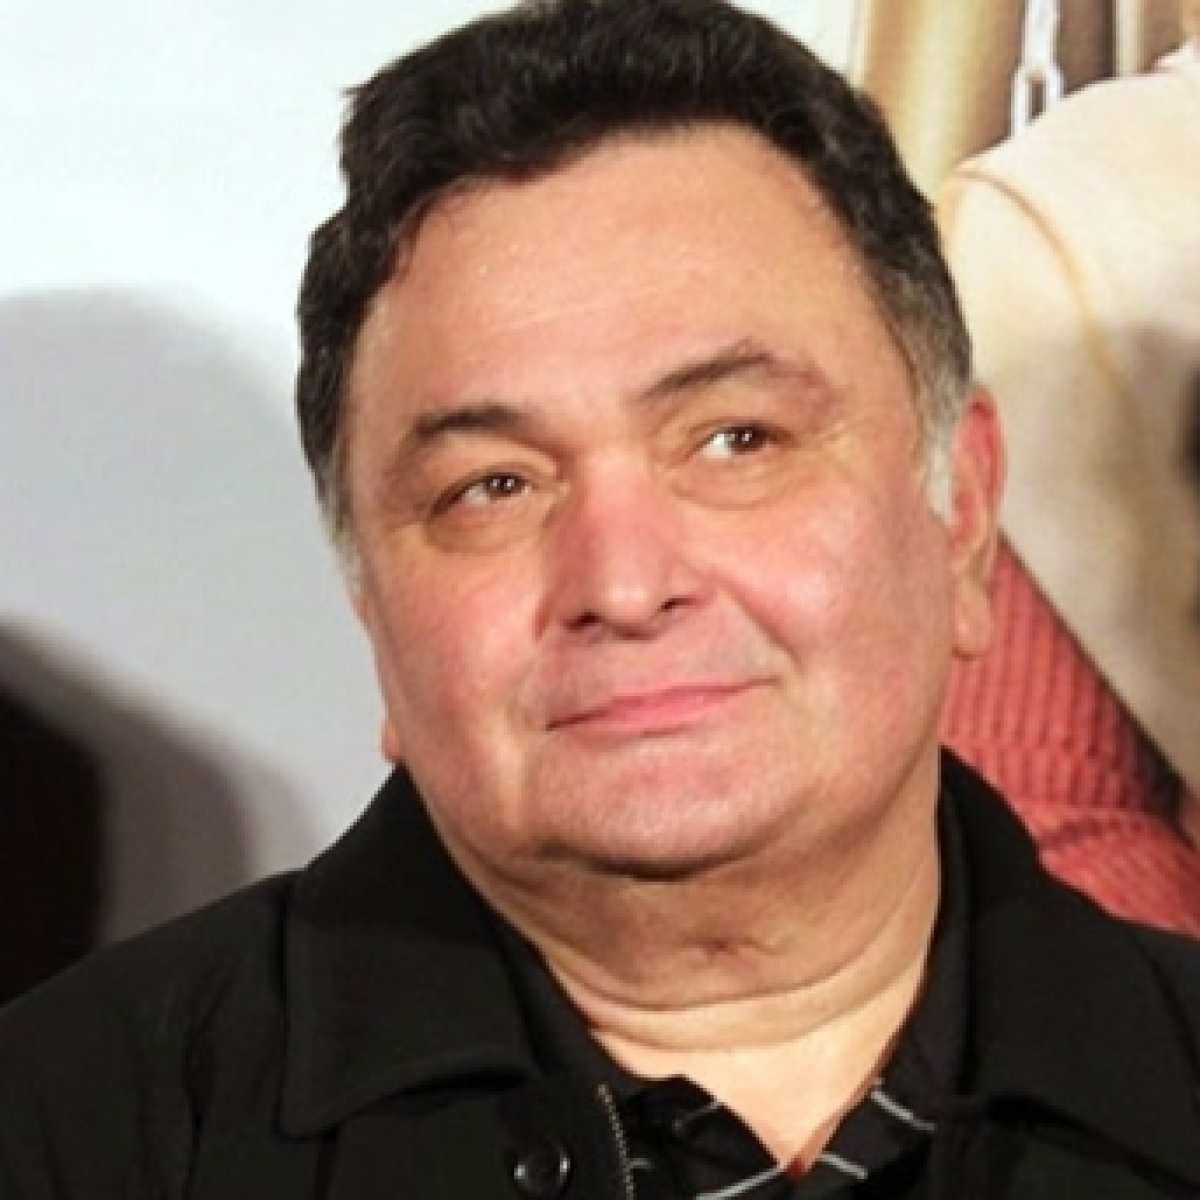 Rishi Kapoor suggests liquor shops should be open amid coronavirus lockdown, says 'Black mein to sell ho hi raha hai'